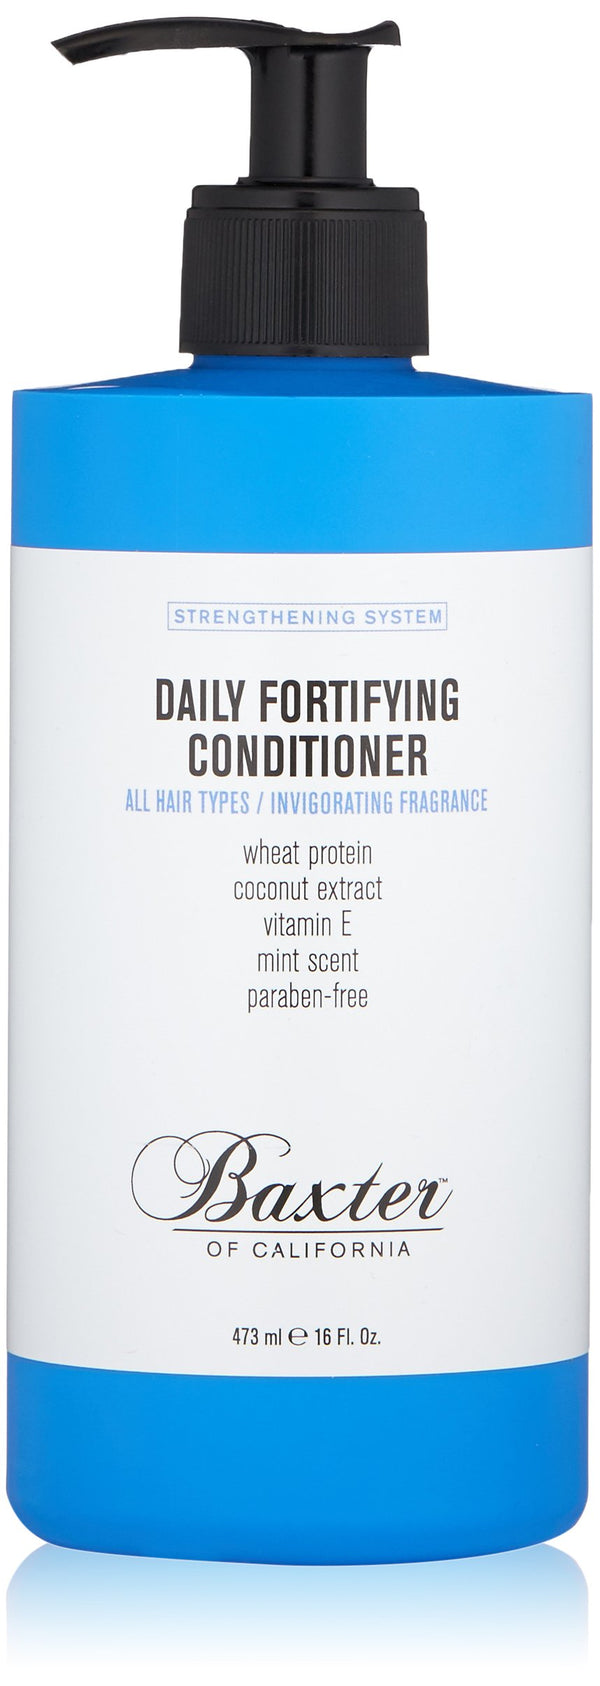 Baxter of California Baxter of California Daily Fortifying Conditioner, 16 oz.